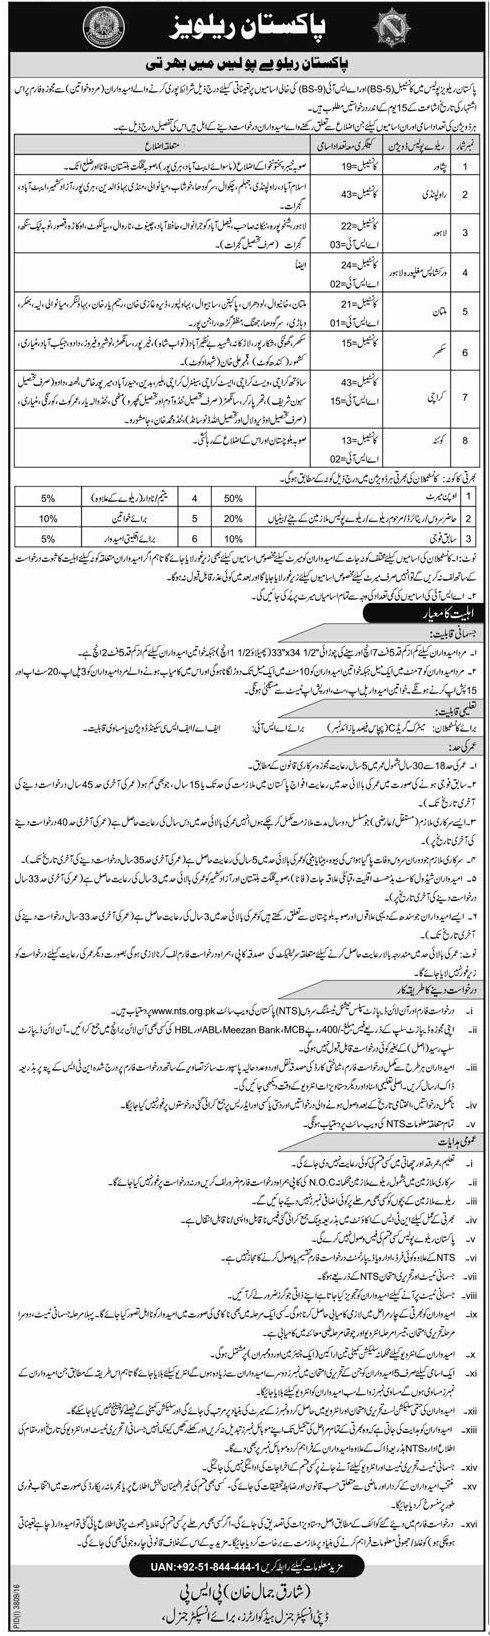 Job title pakistan railway police jobs 2017 for constable and asi job description you can find